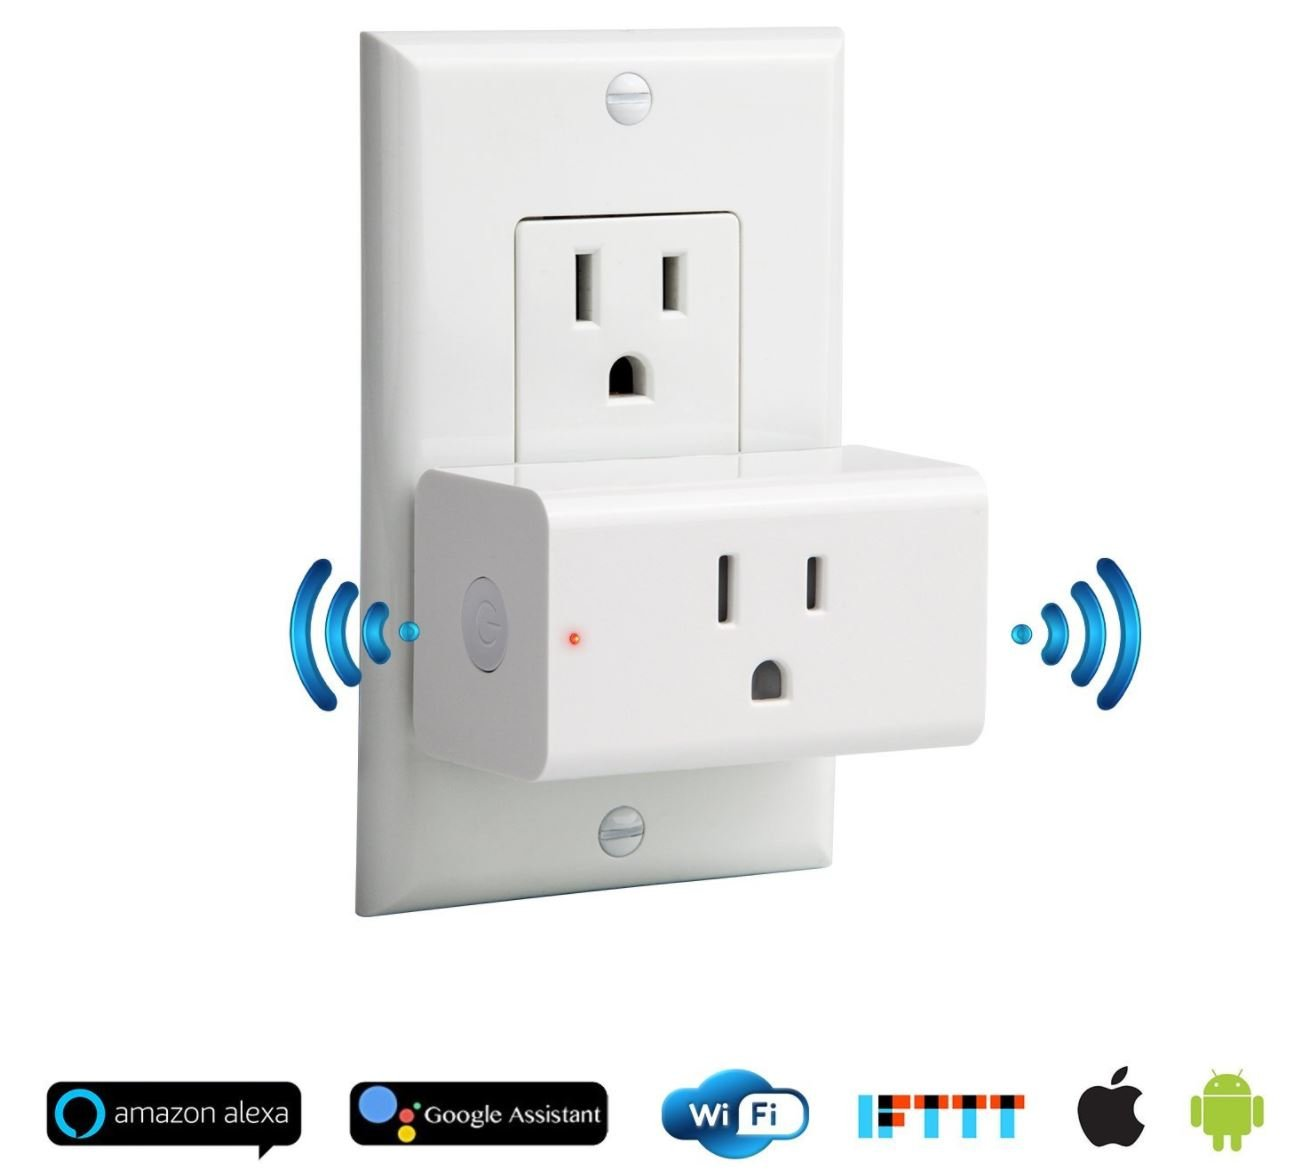 MOCREO Mini Smart Plug, WiFi Enabled, Works with Amazon Echo Alexa and Google Home Assistant